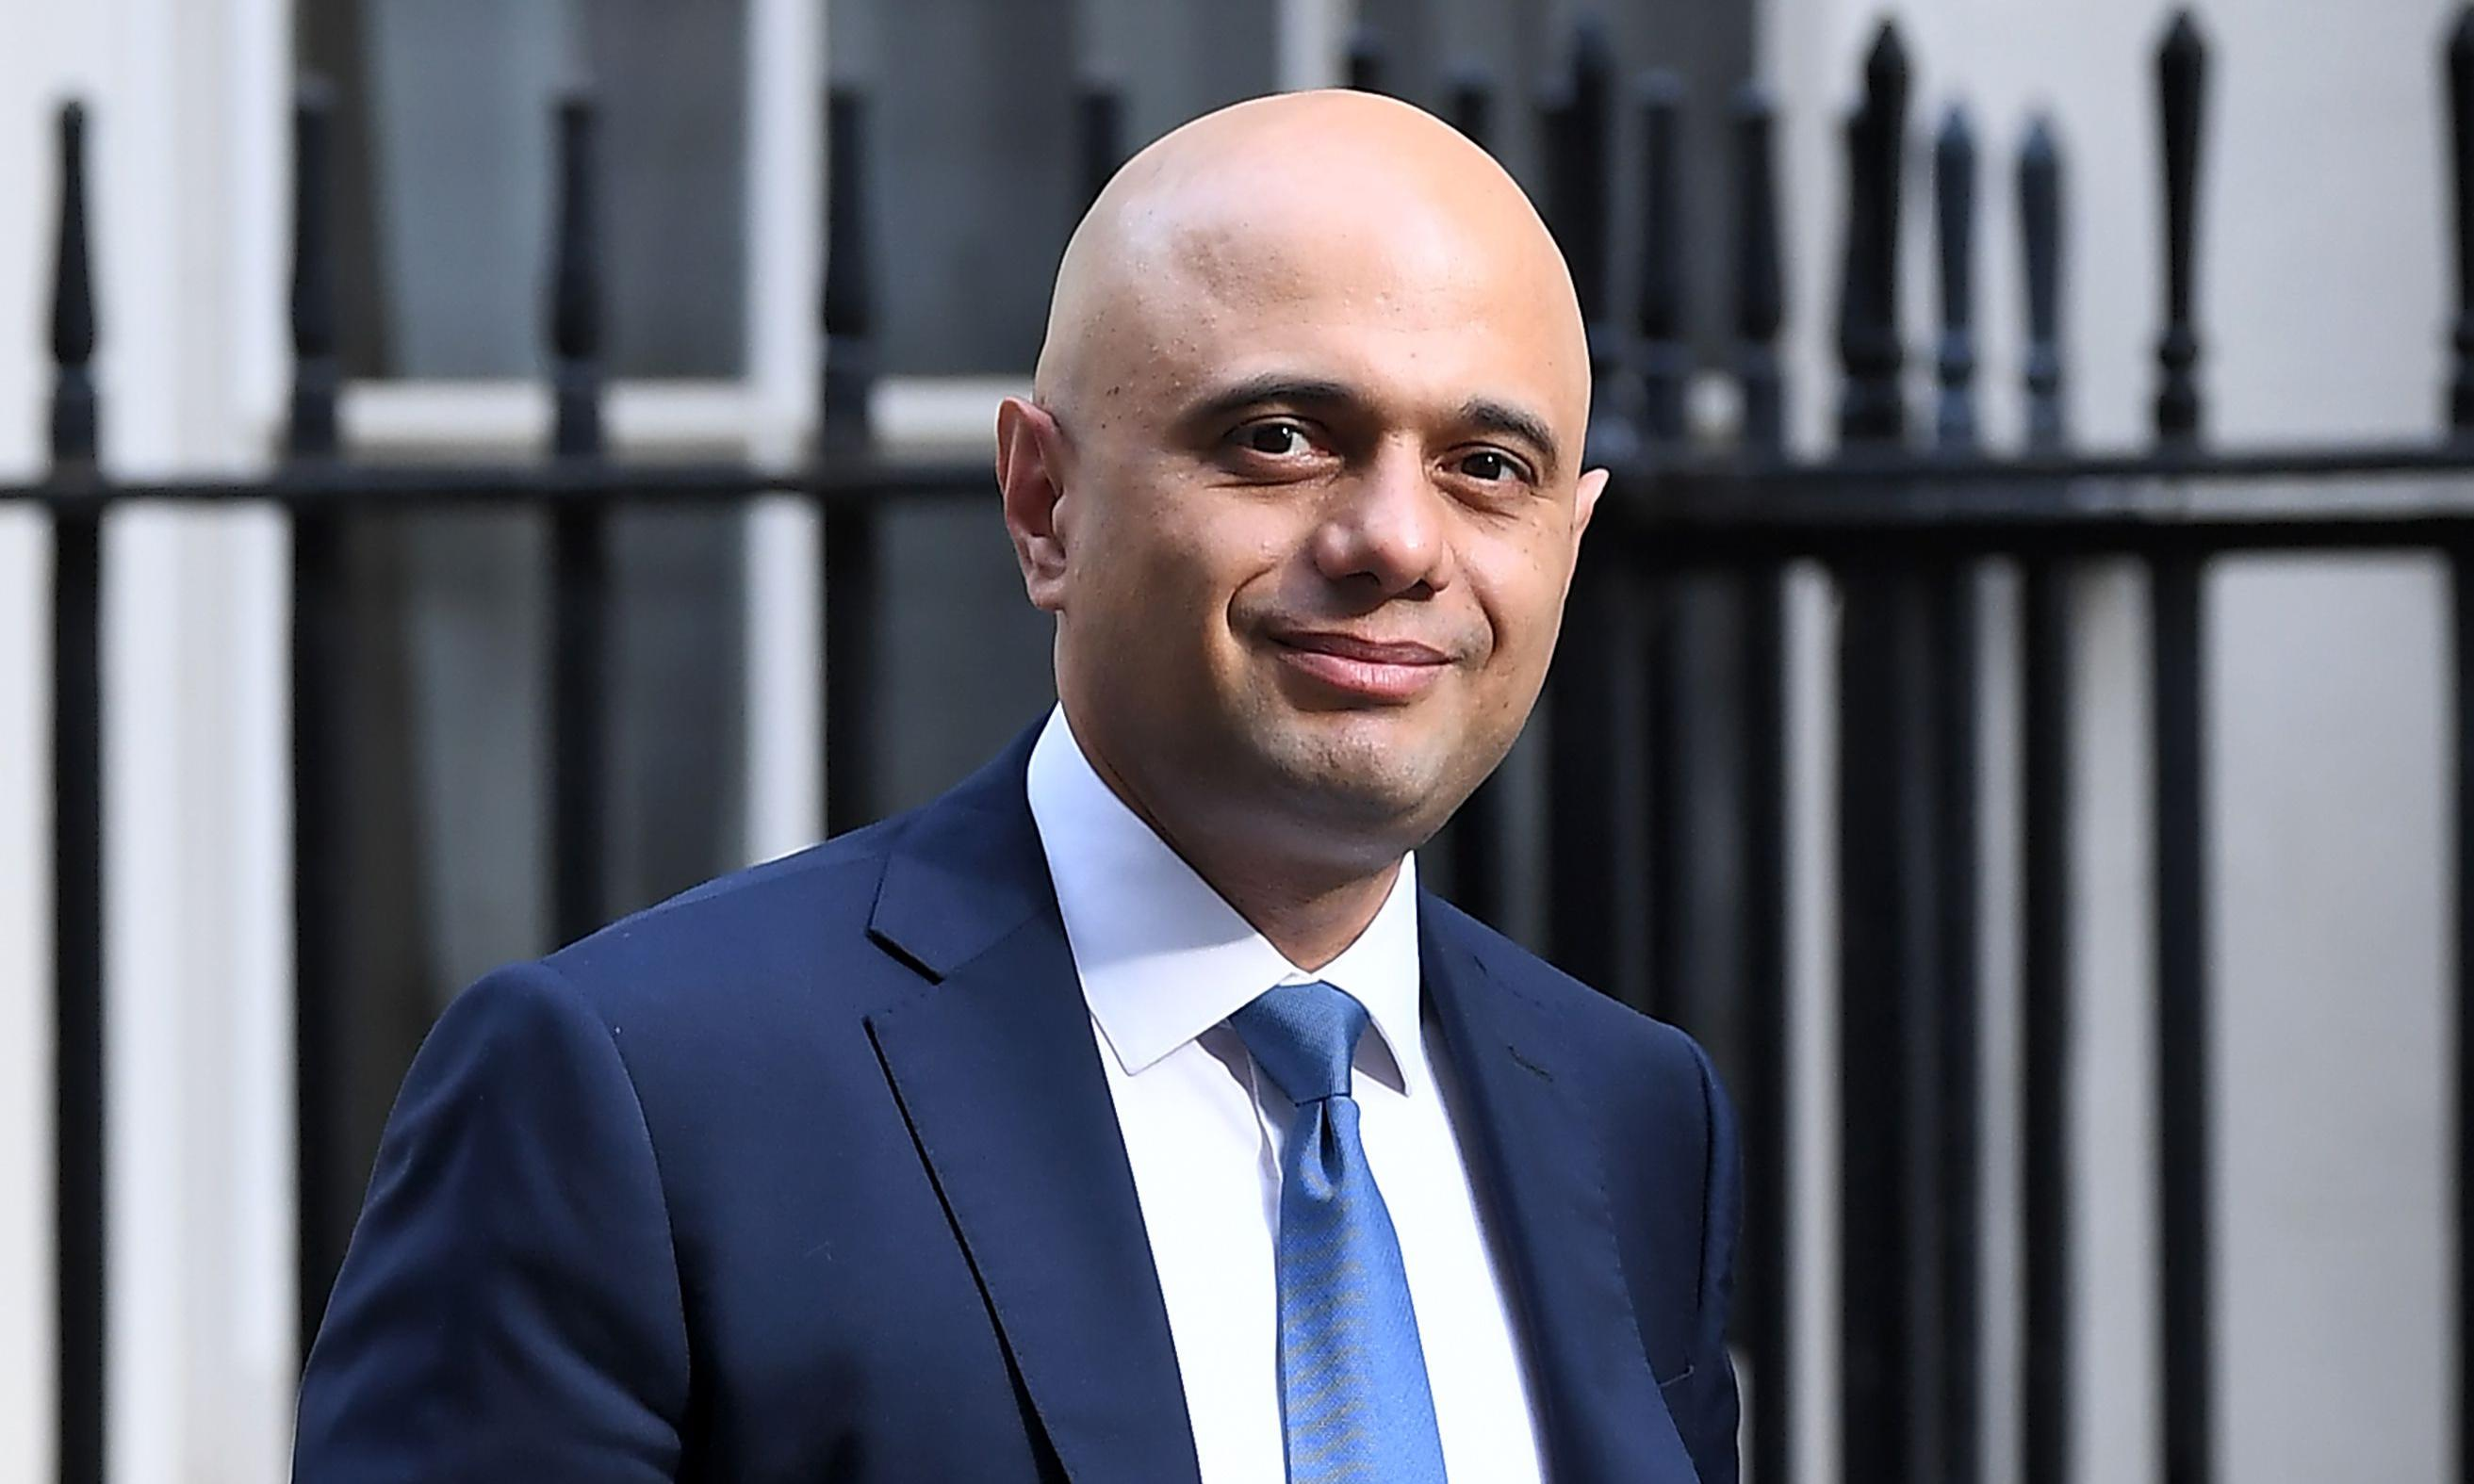 Government likely to exceed budget target by £8bn this year